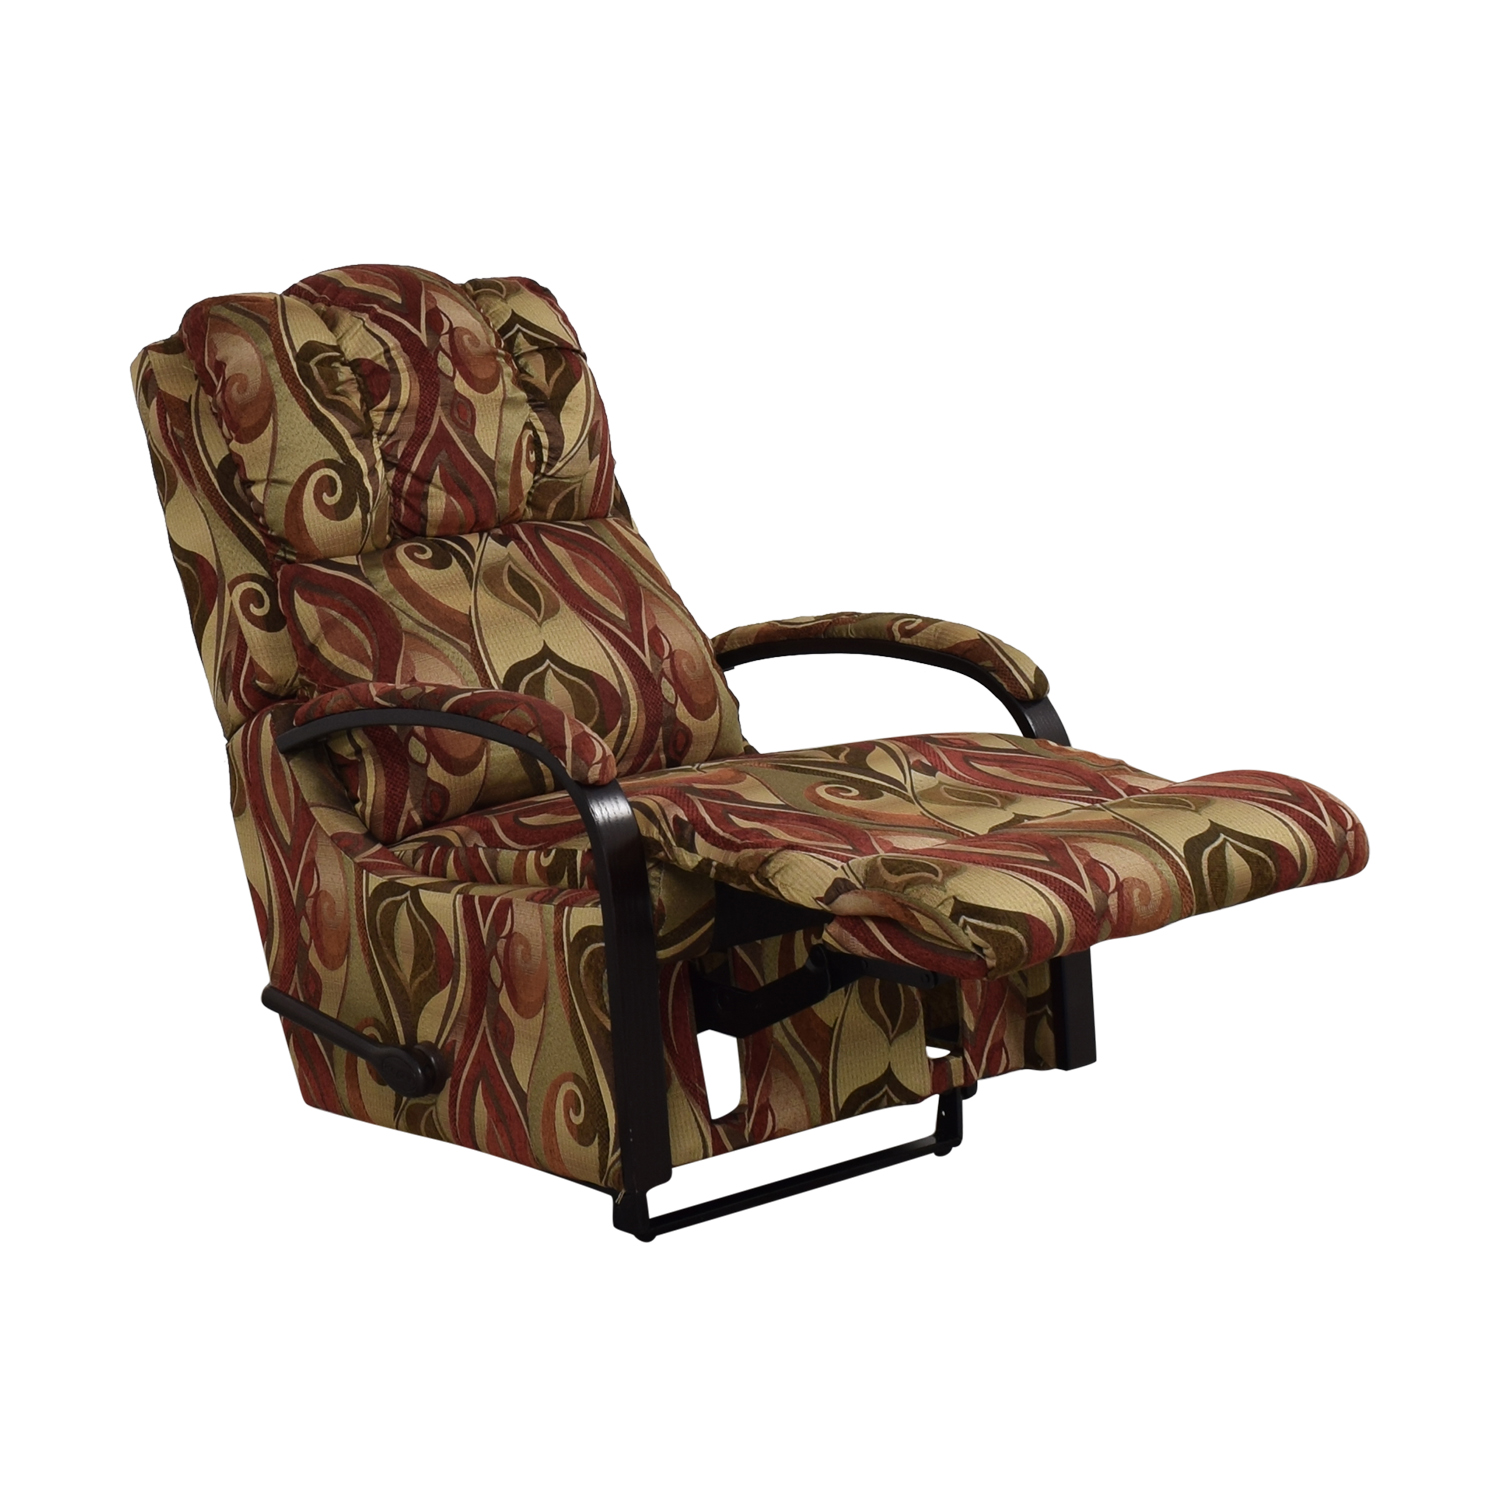 La-Z-Boy Harbor Town Reclina-Way Recliner / Recliners